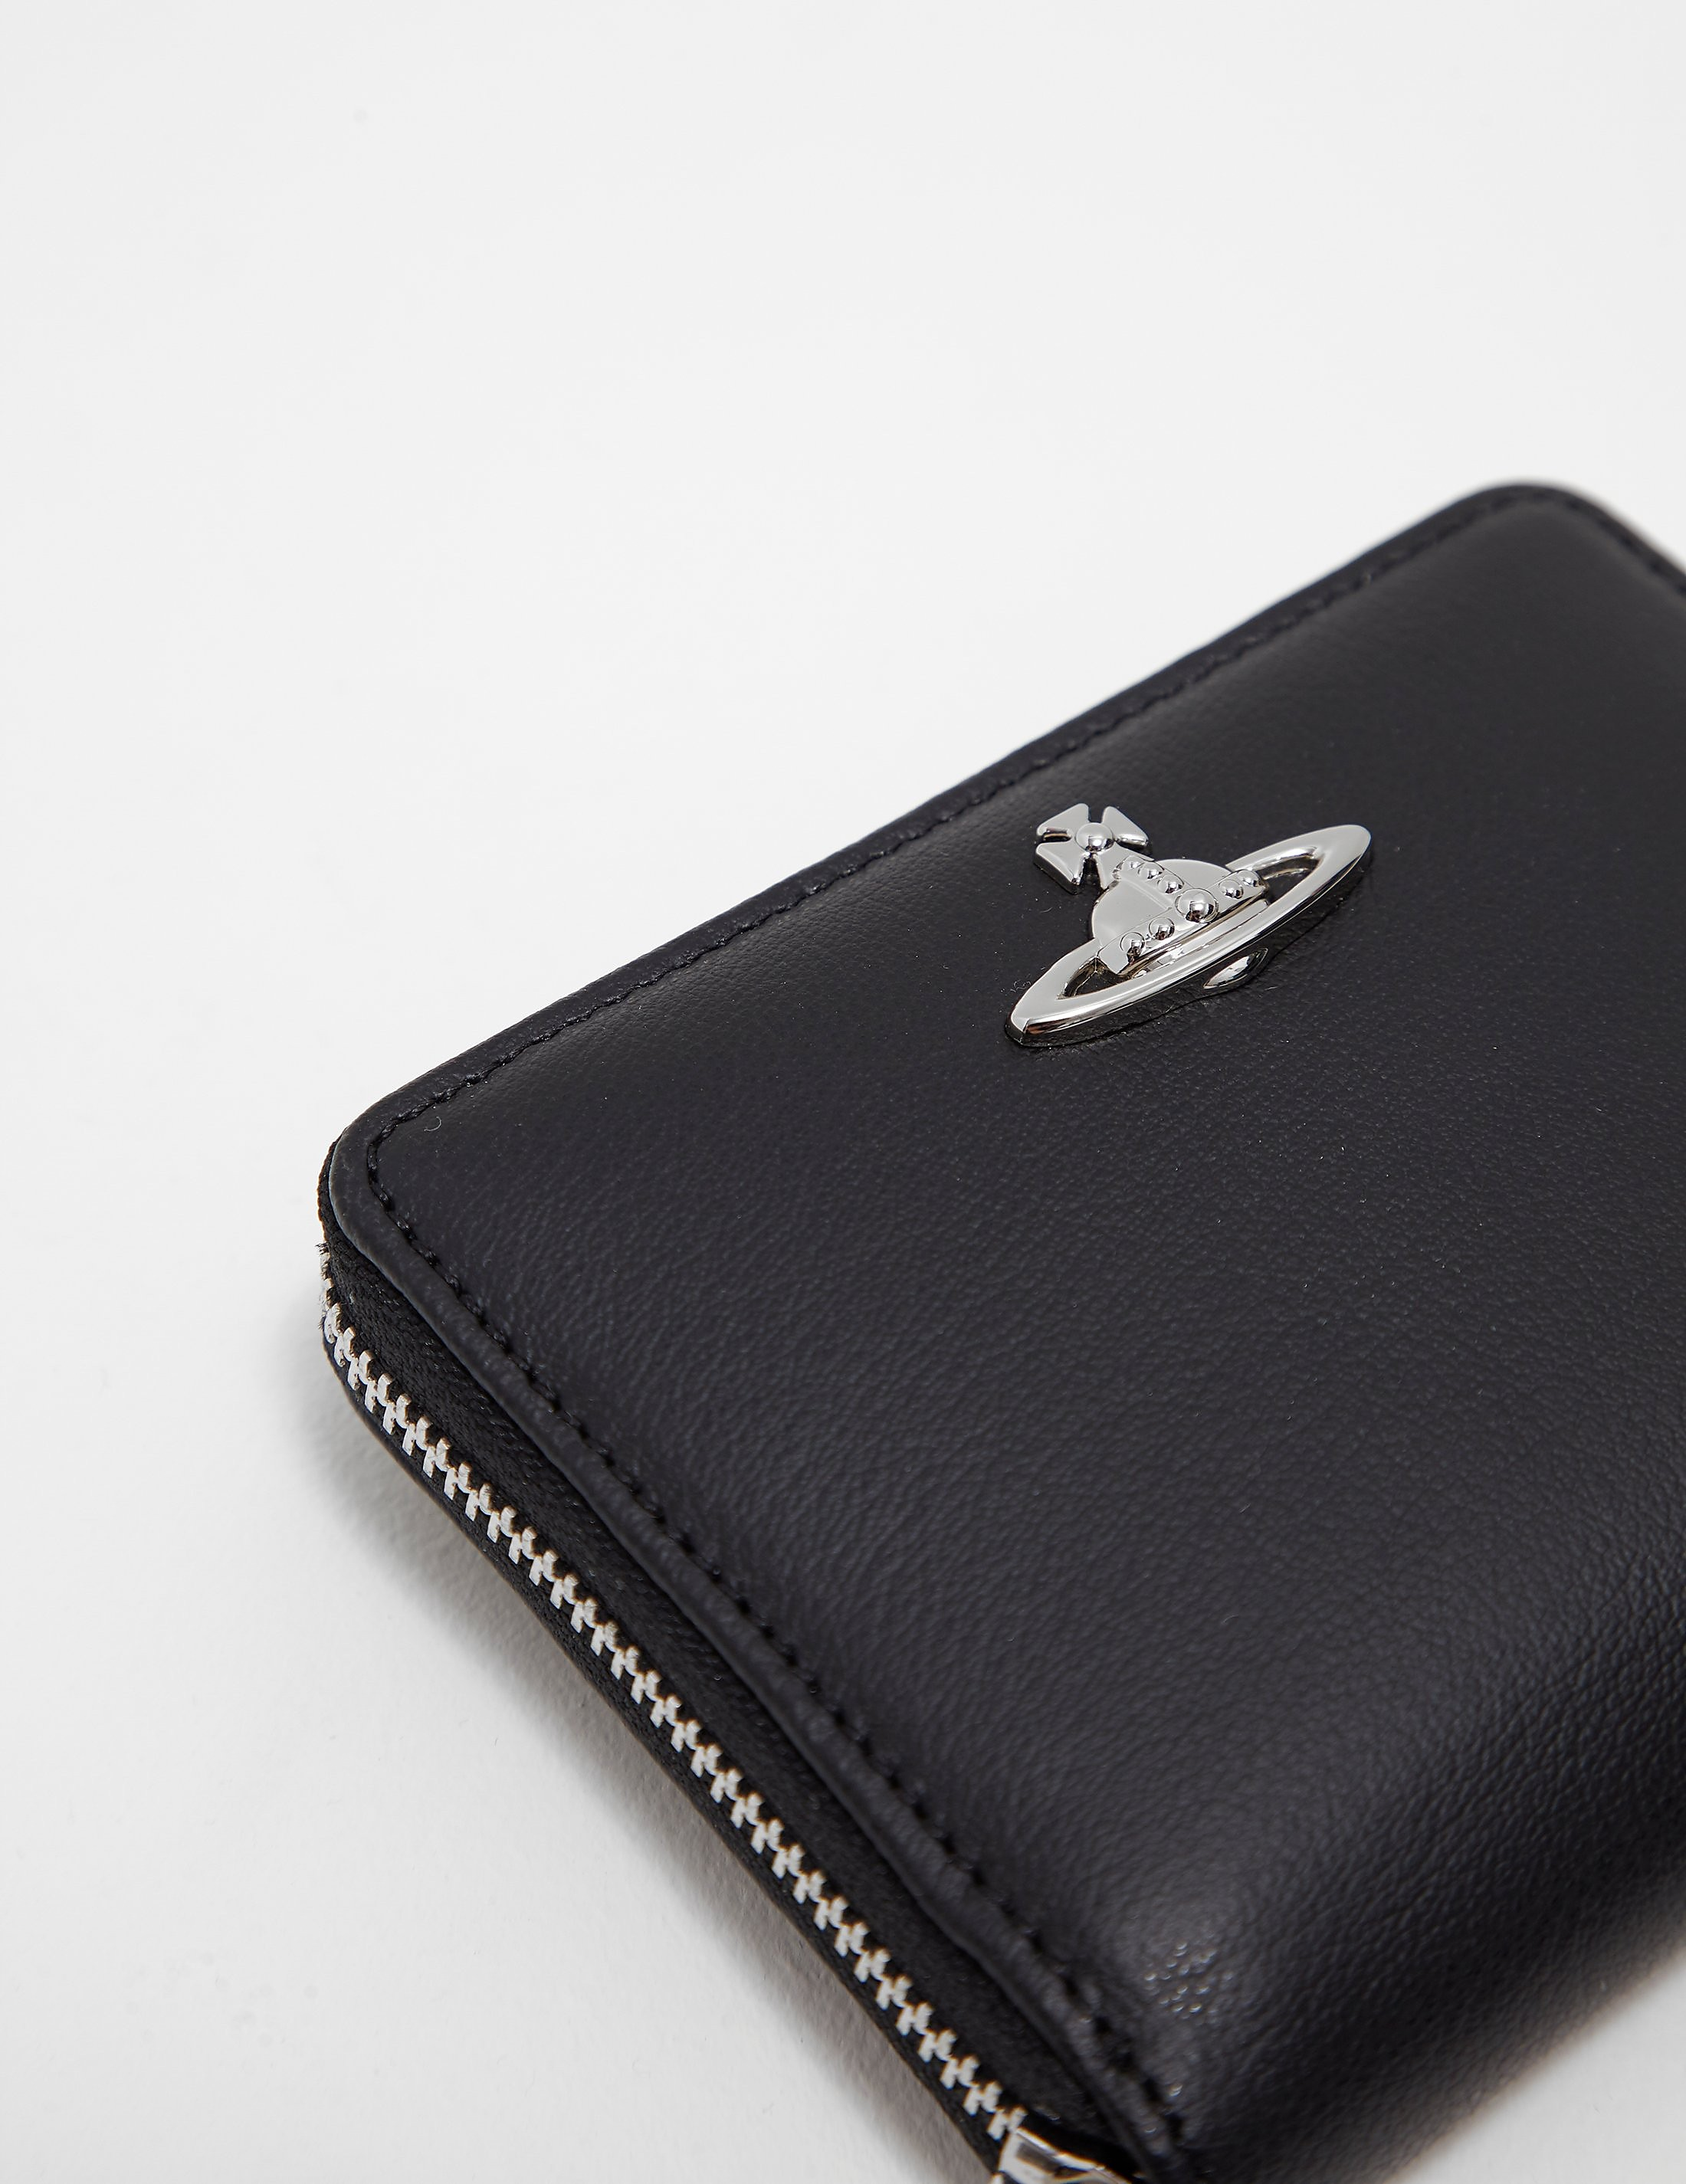 Vivienne Westwood Cambridge Zip Wallet